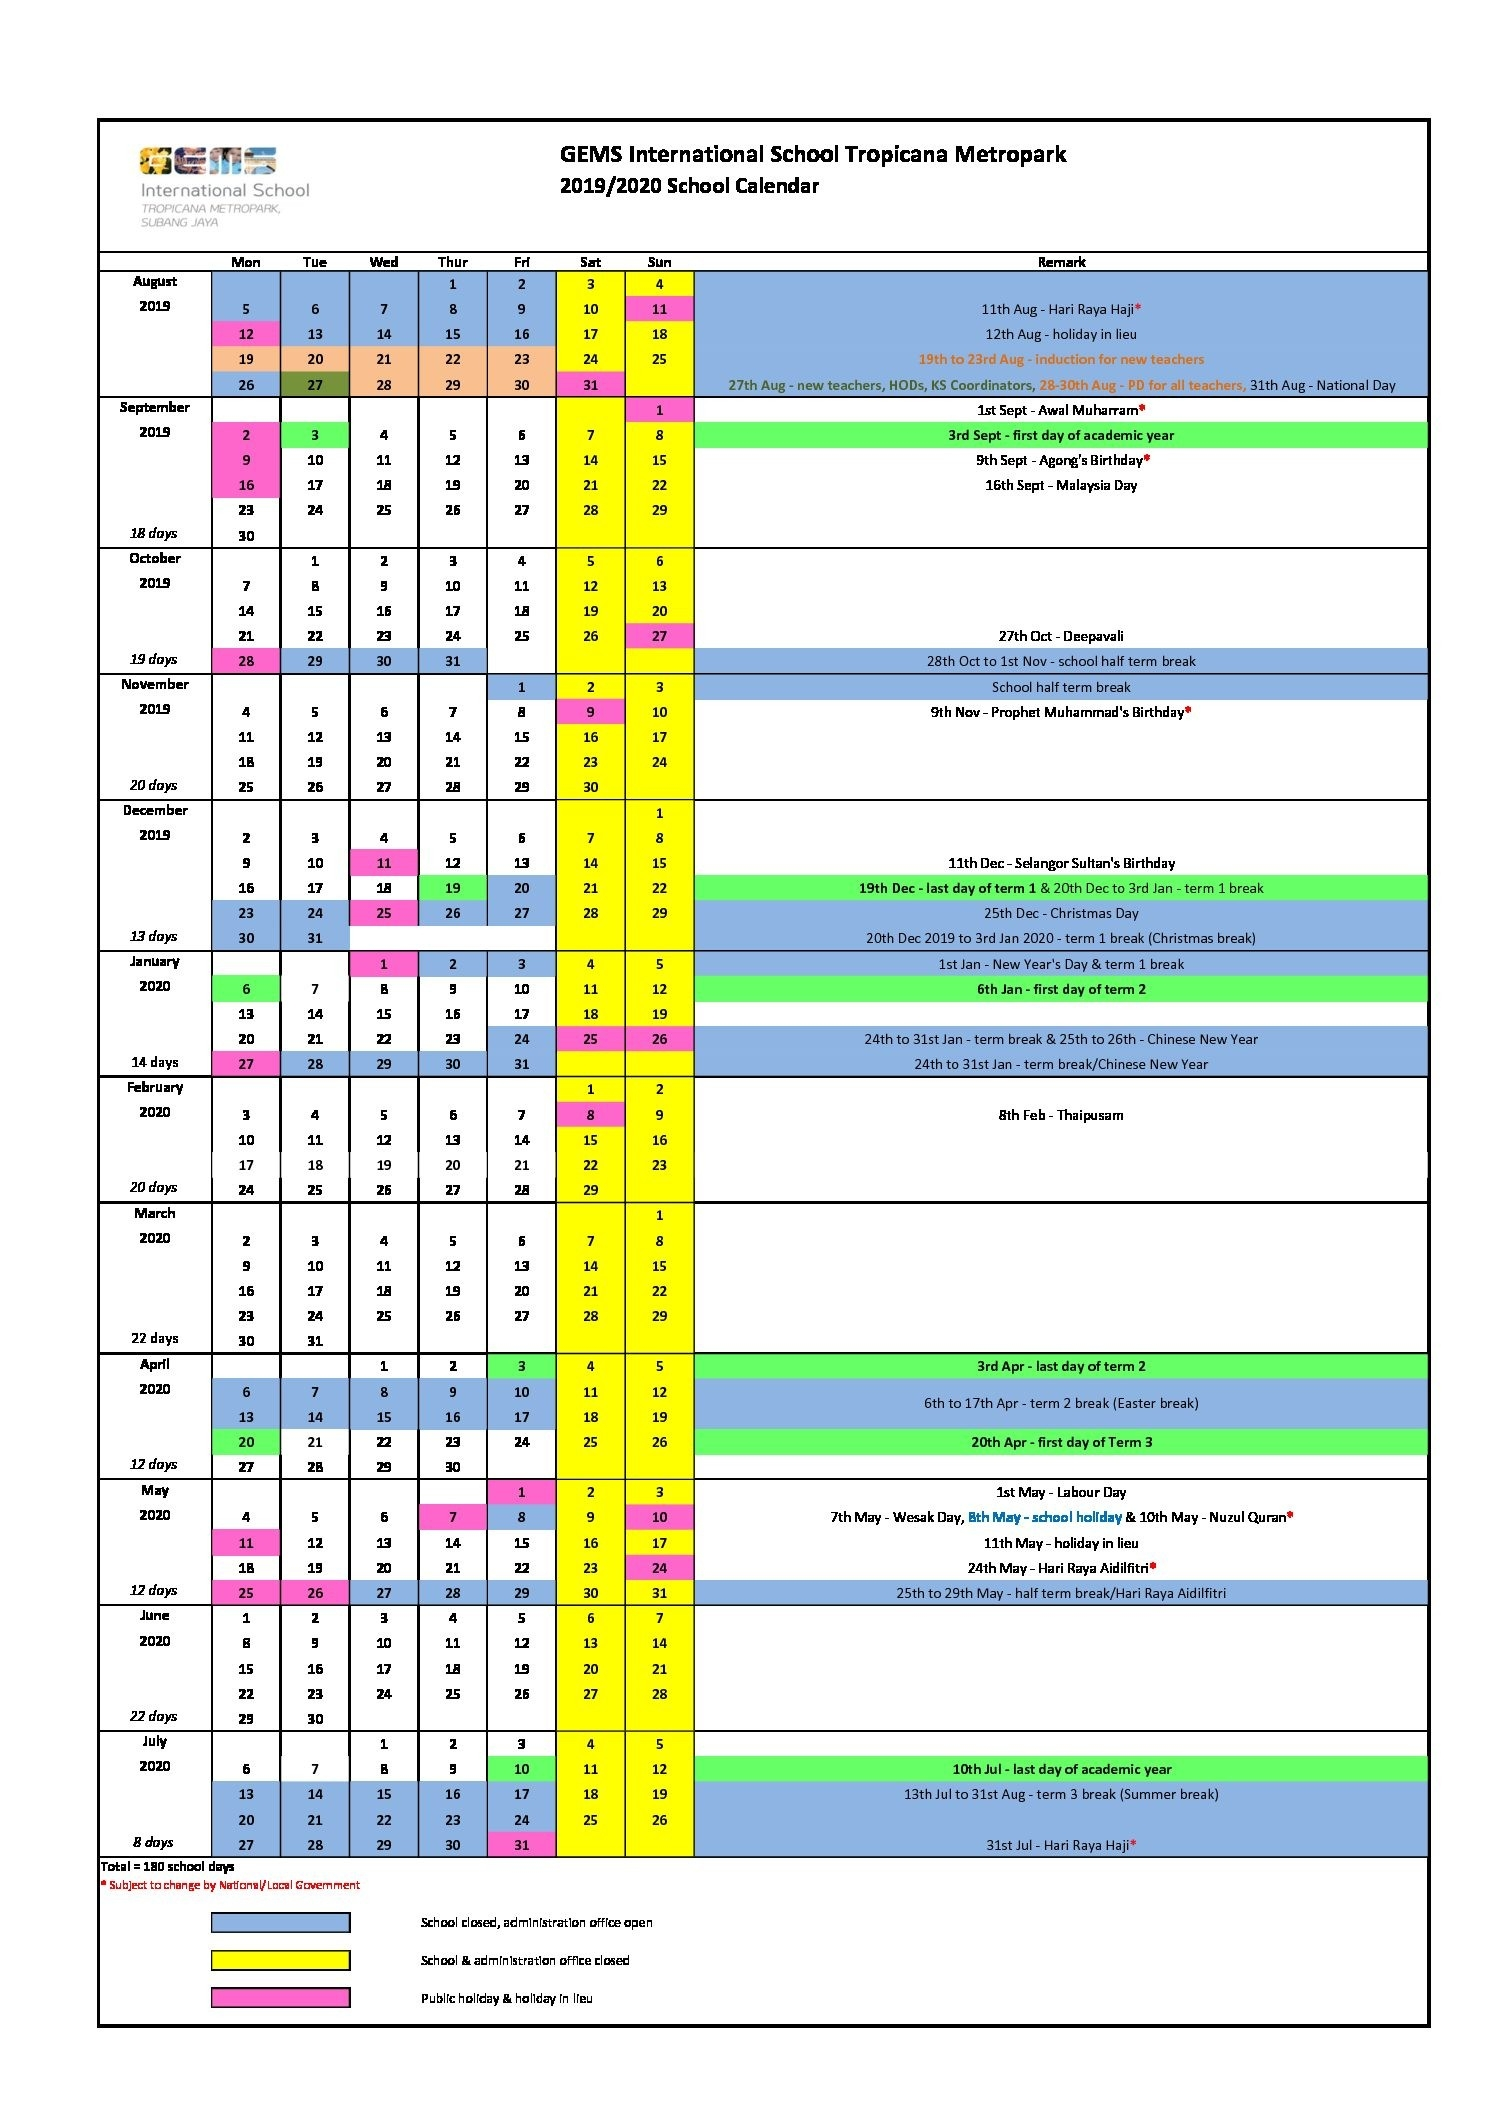 2019/2020 School Calendar - Gems International School Metropark-Malaysia School Holidays 2020